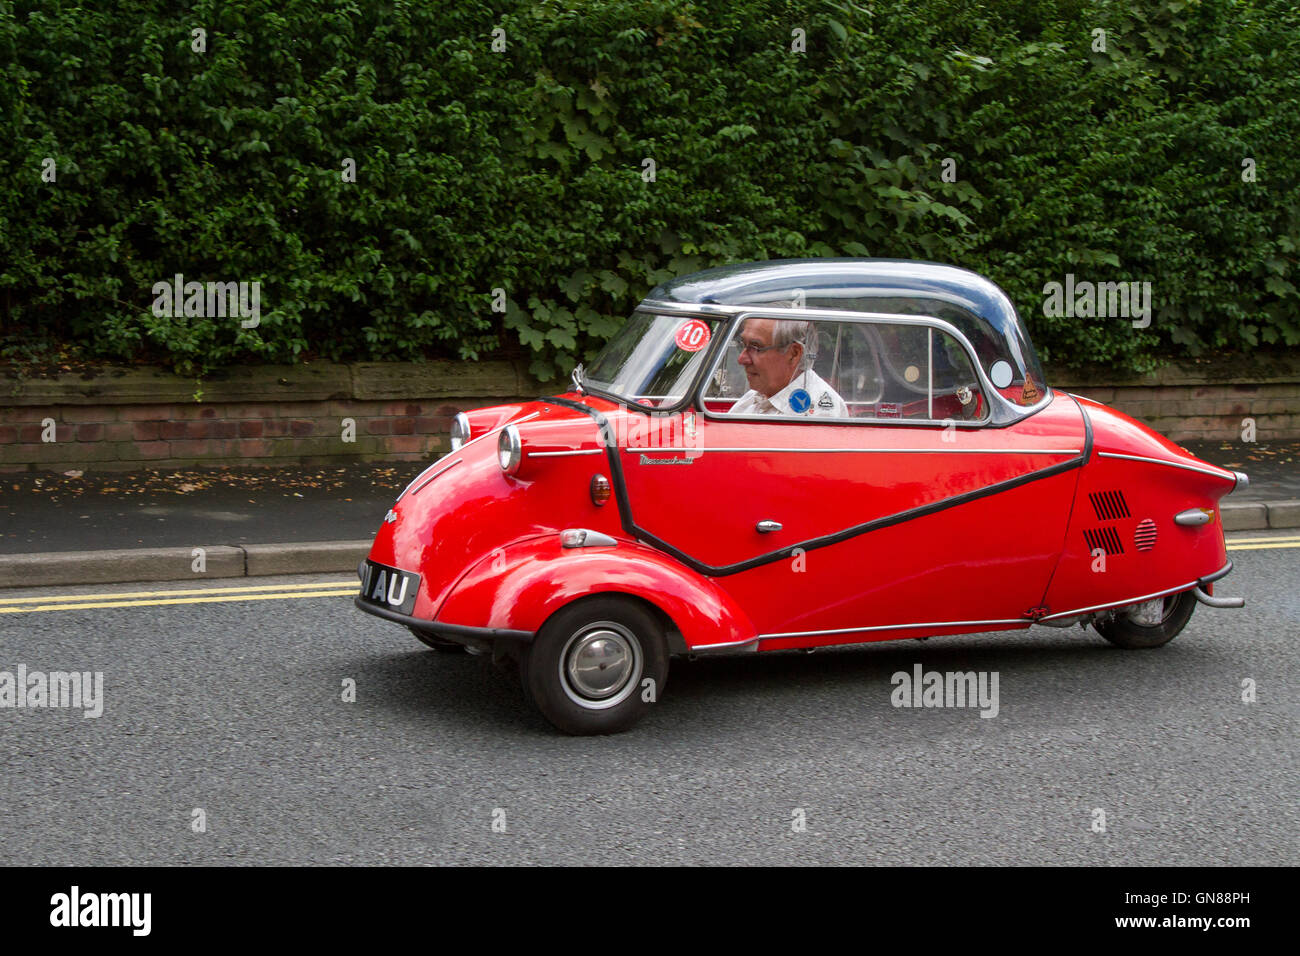 FMR, Messerschmitt, Kabinenroller, monocoque, TG500, at Ormskirk MotorFest with bubble cars in the historic town - Stock Image